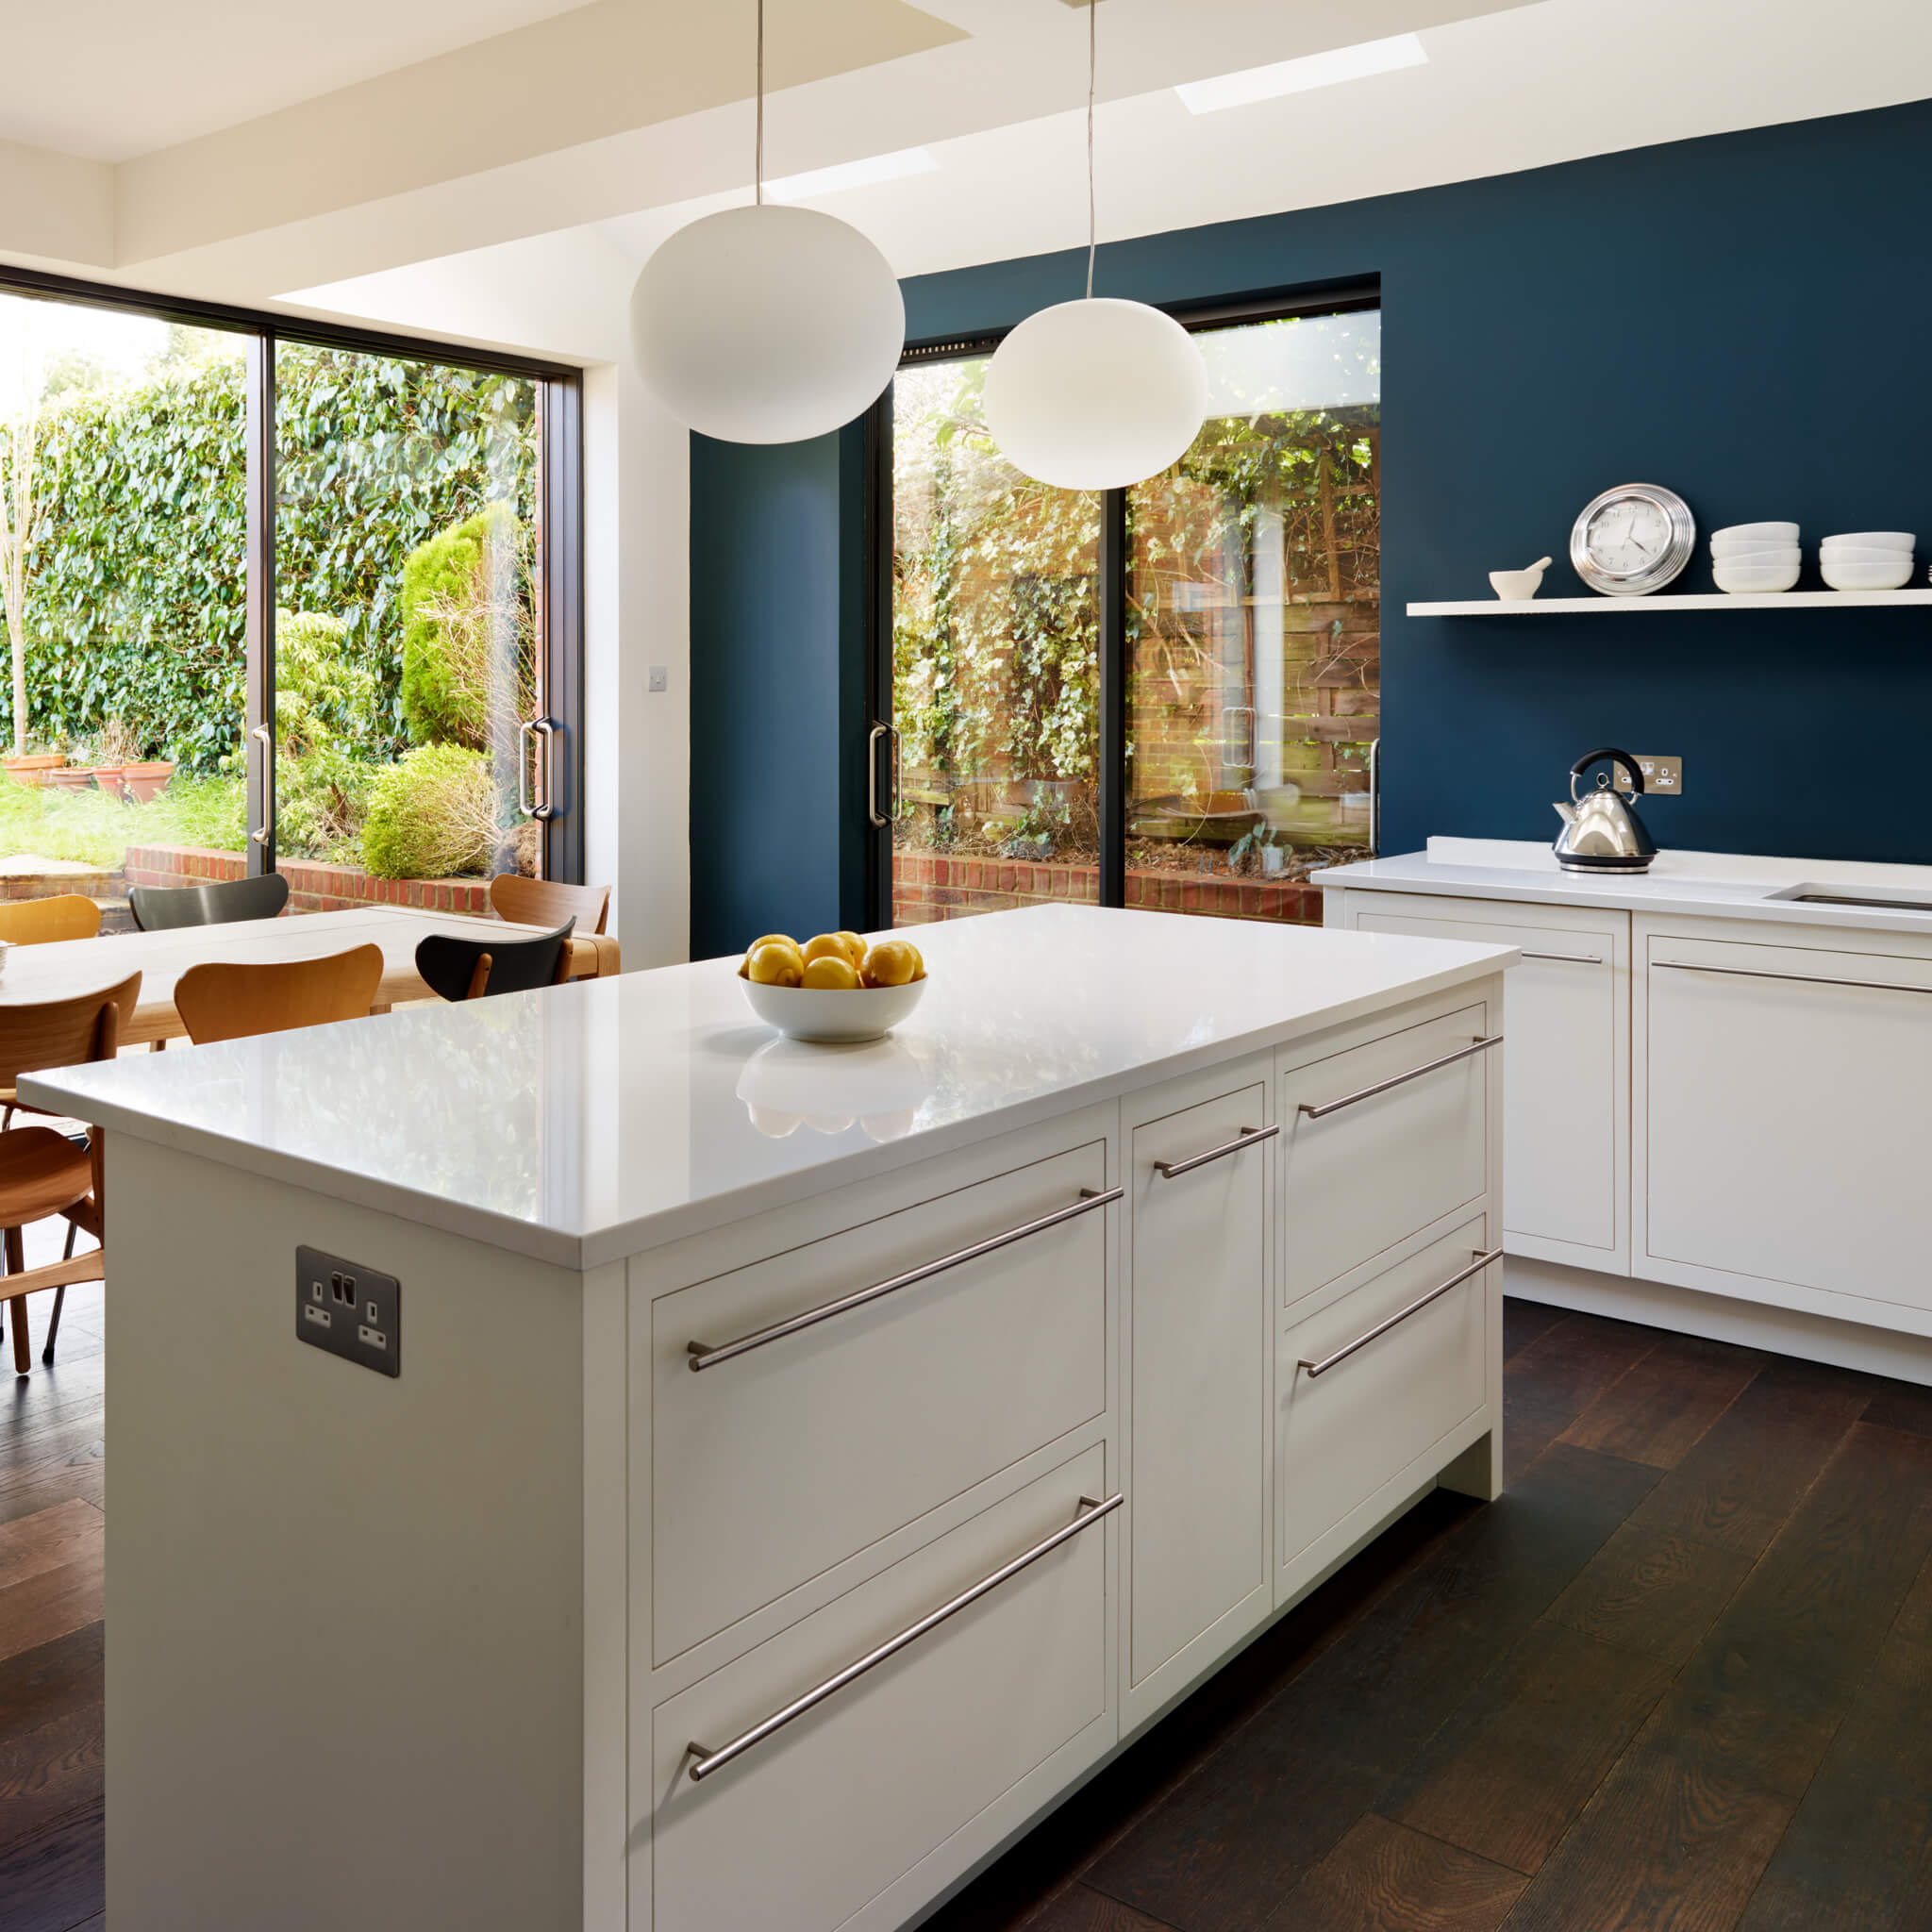 Kitchen Design Making The Most Of The Great Outdoors